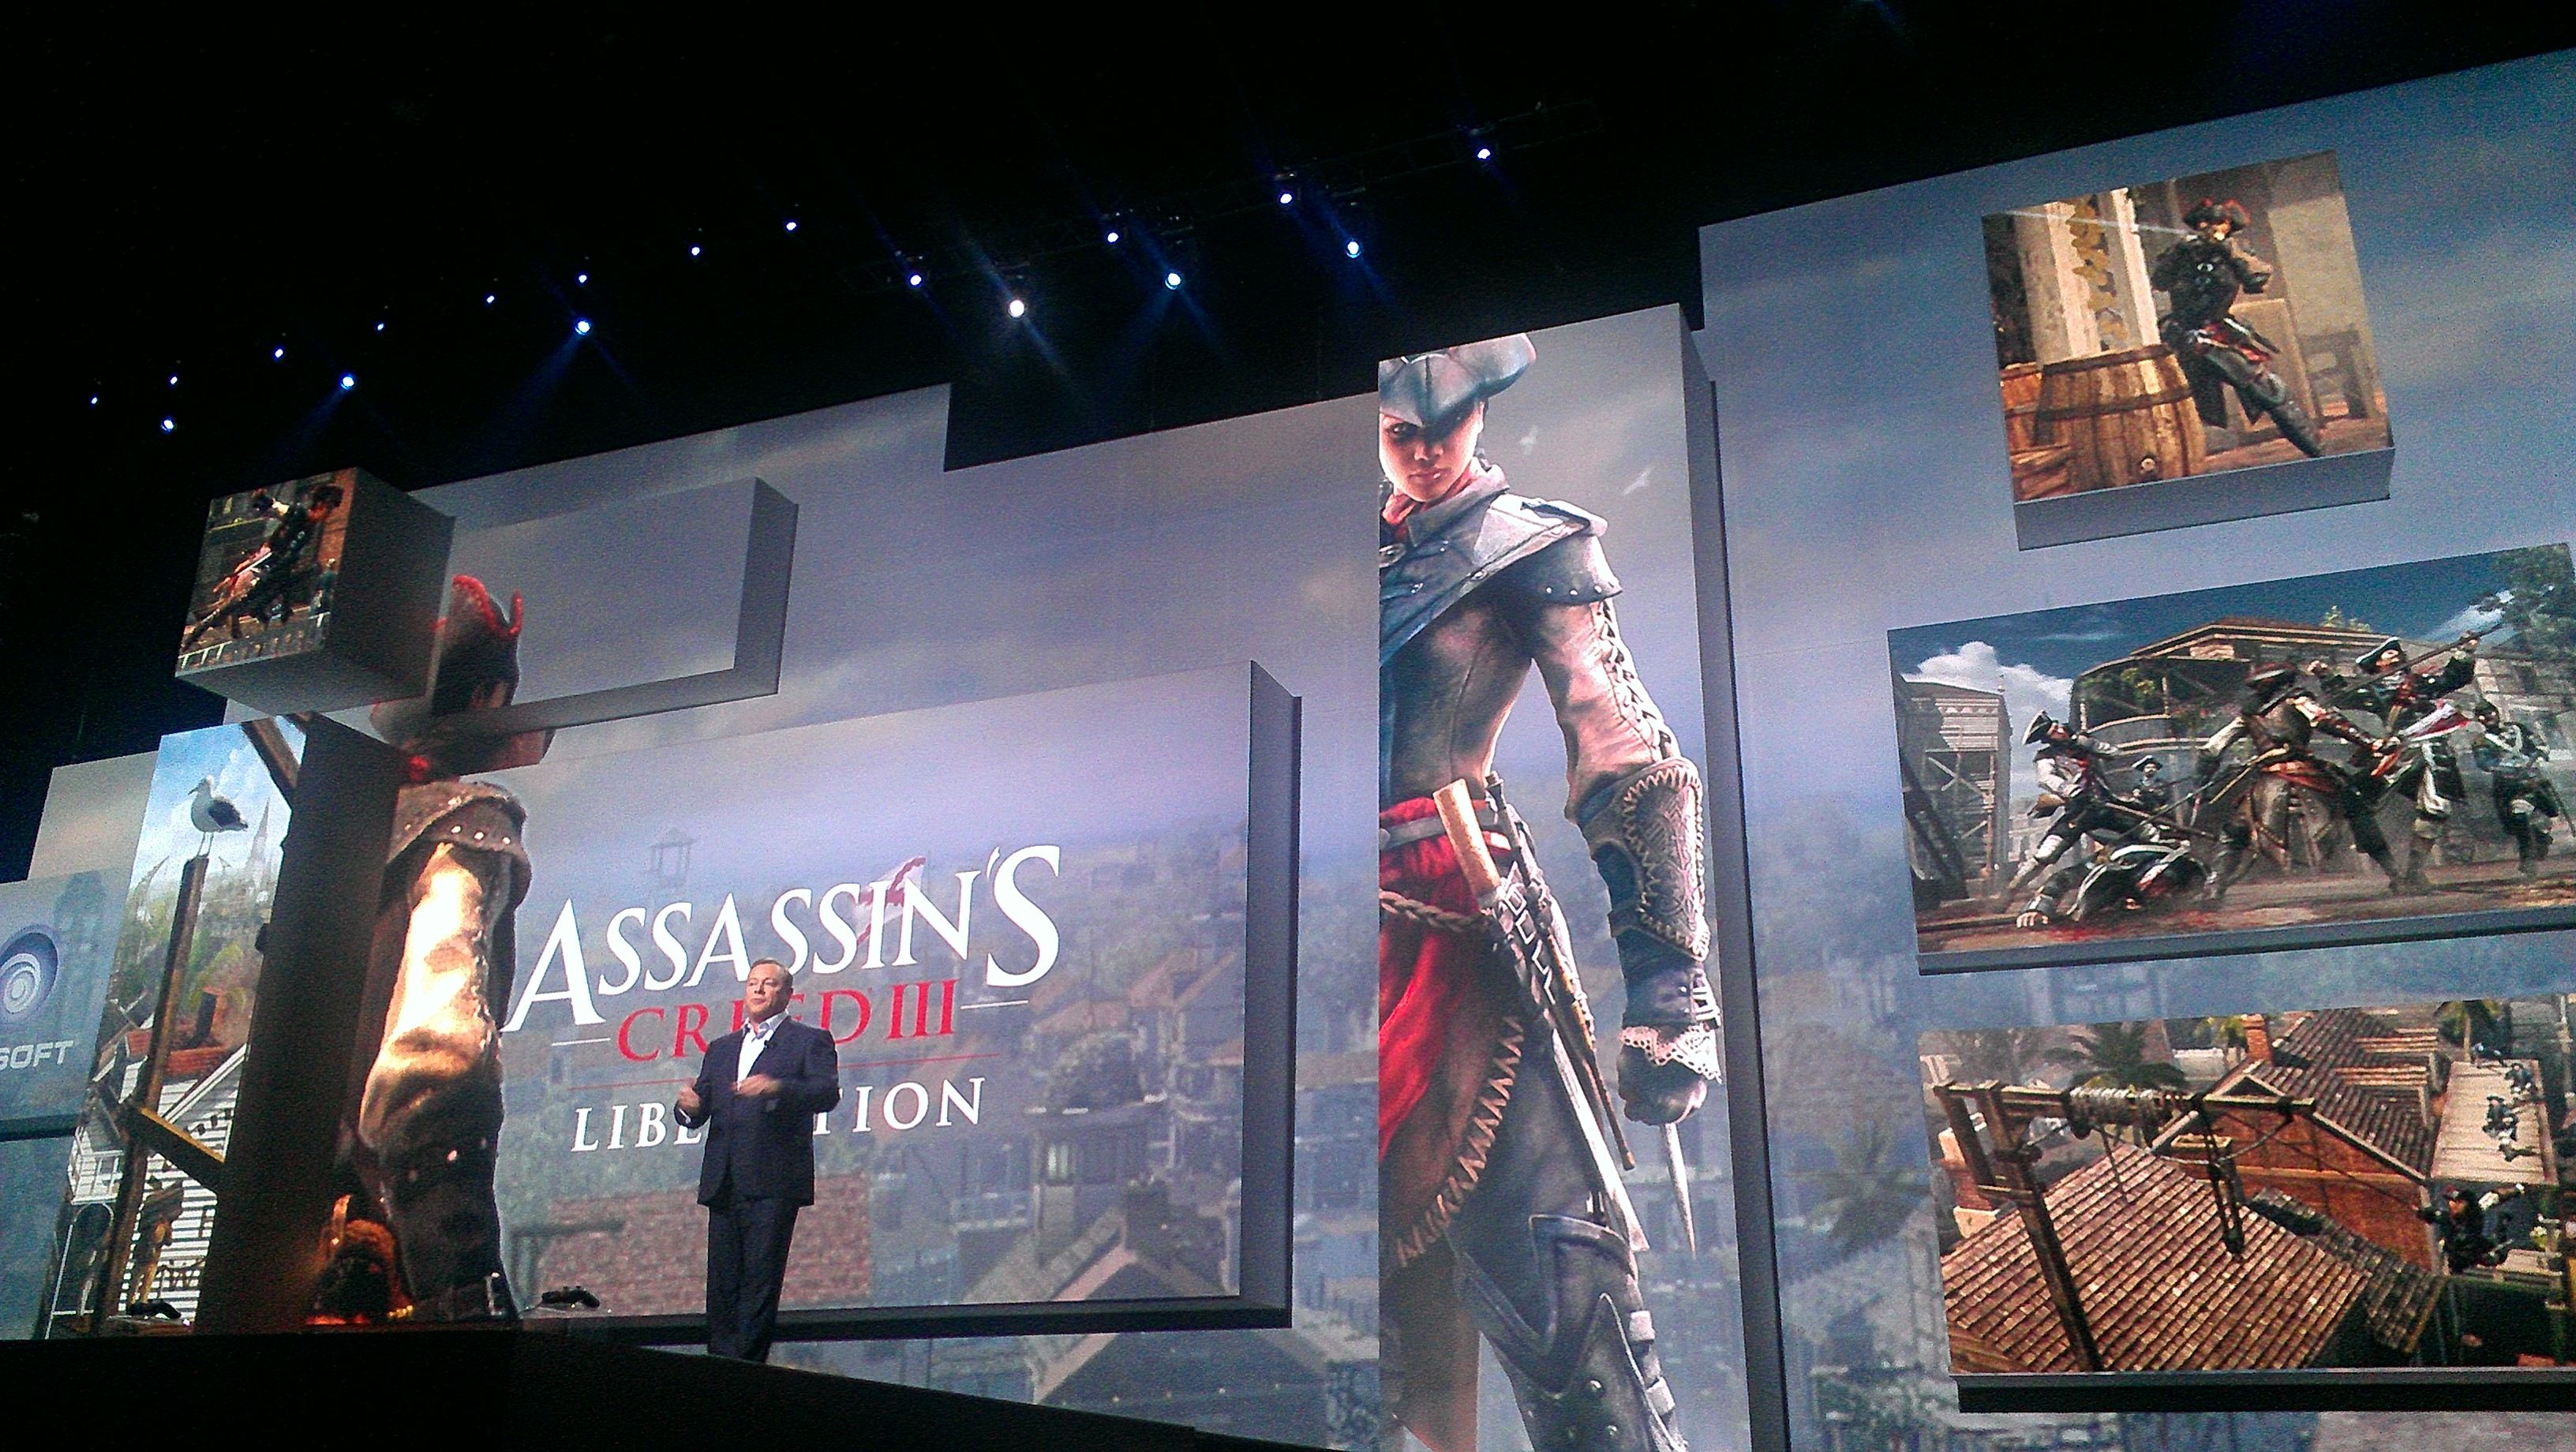 Ubisoft: Assassin's Creed III